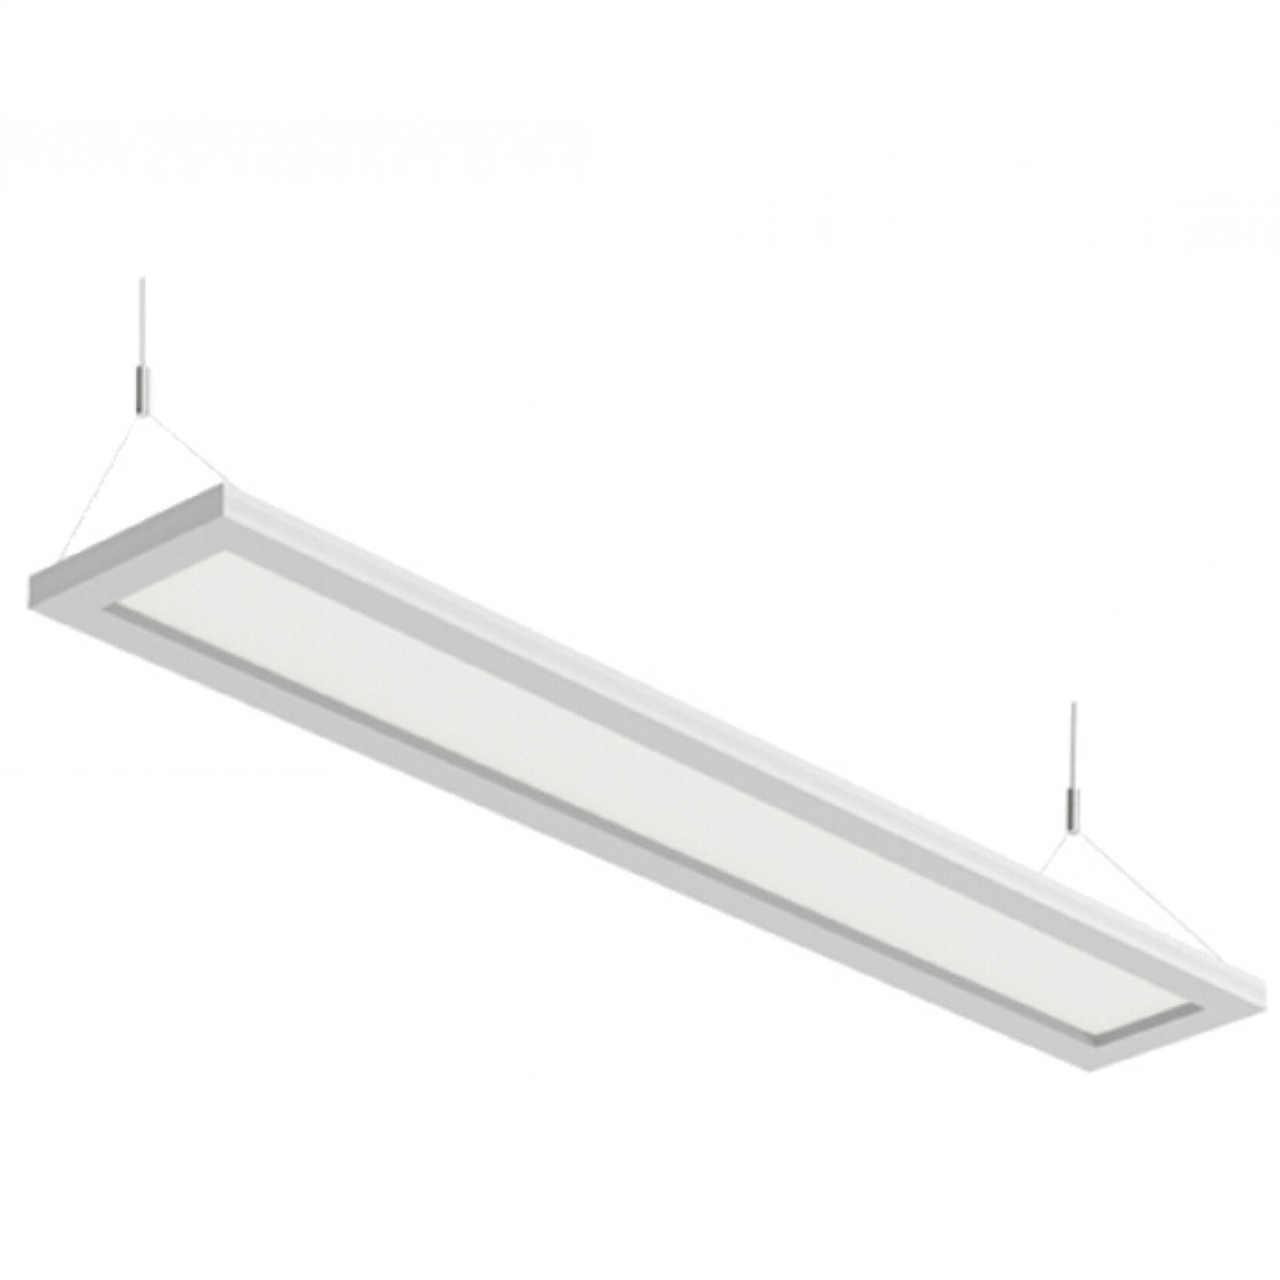 Led Lighting Prices Hanging Led Panel Direct Indirect Office Light 4ft 40w